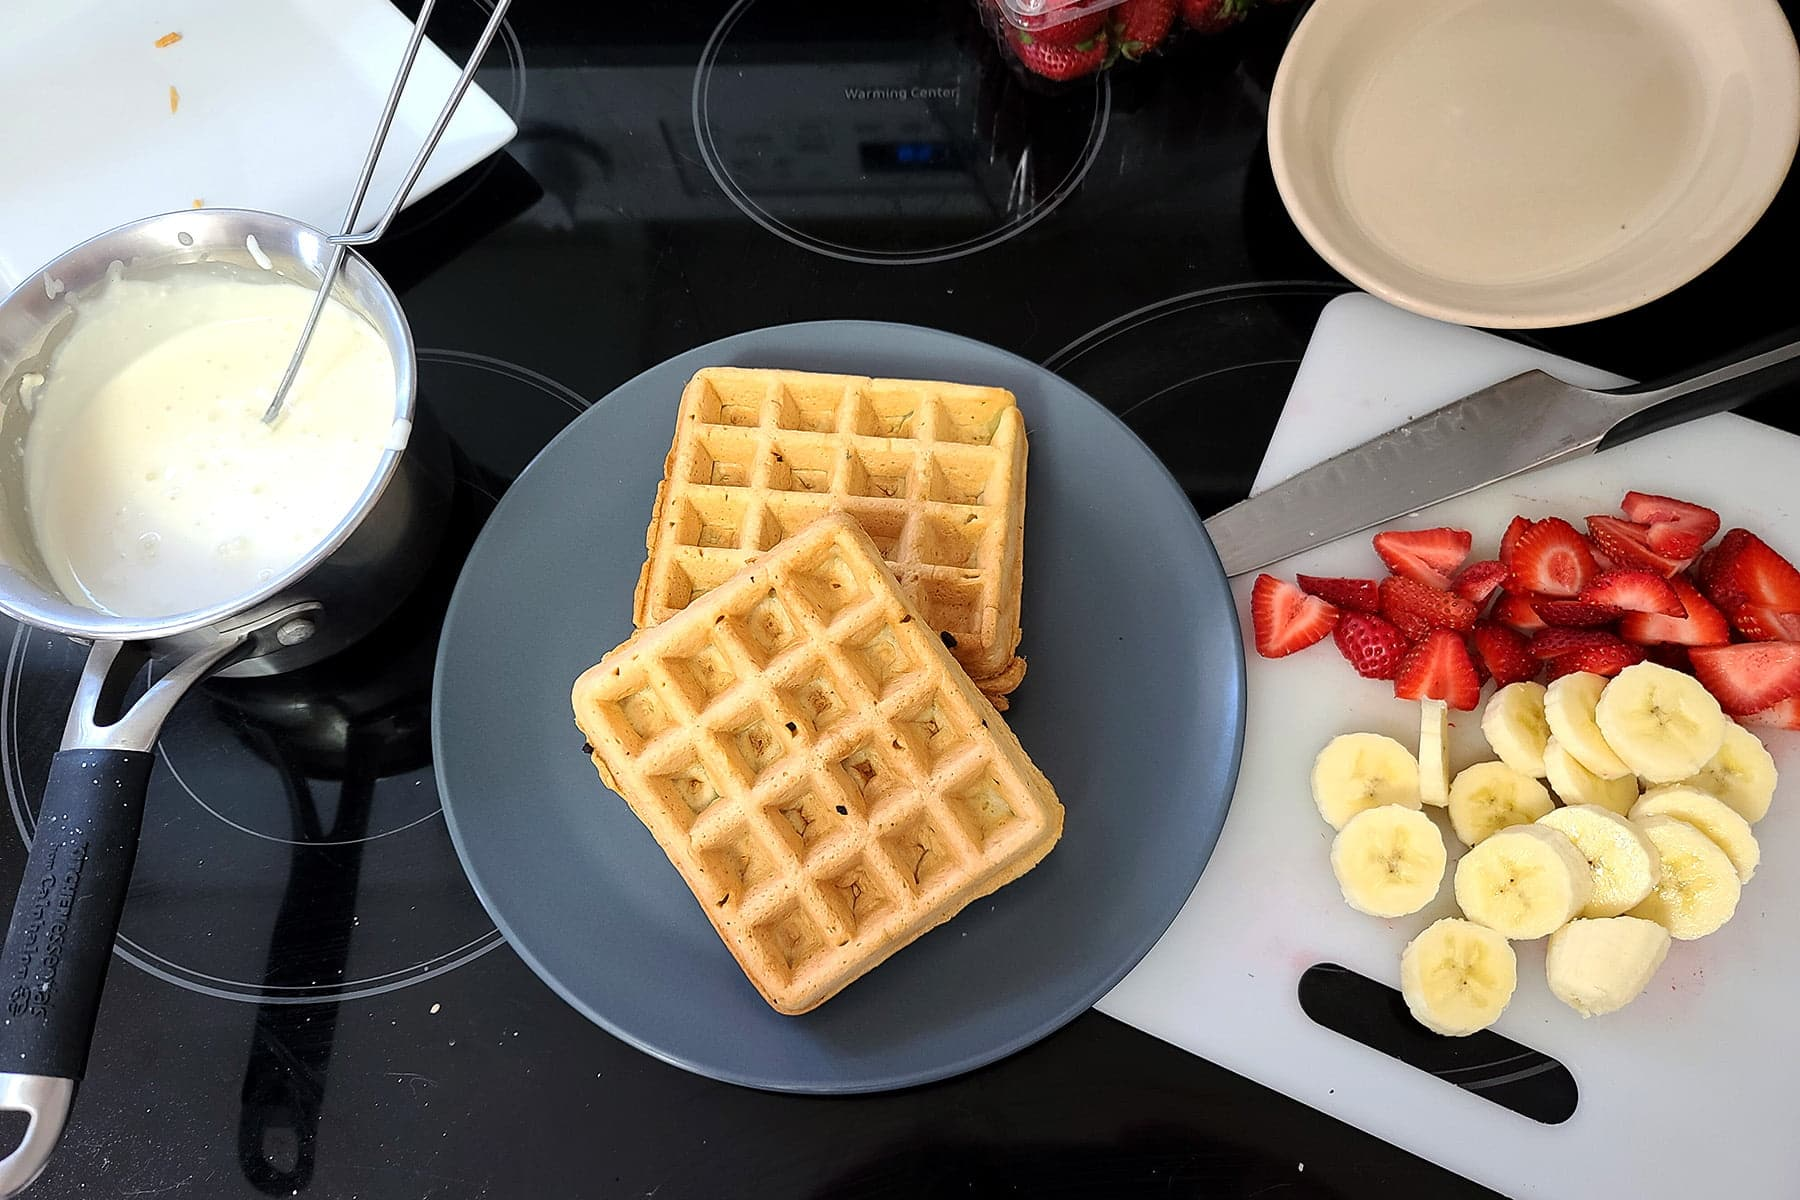 A small saucepan with the cream cheese sauce, a plate with two waffles on it, and the cutting board with sliced strawberries and bananas on it.